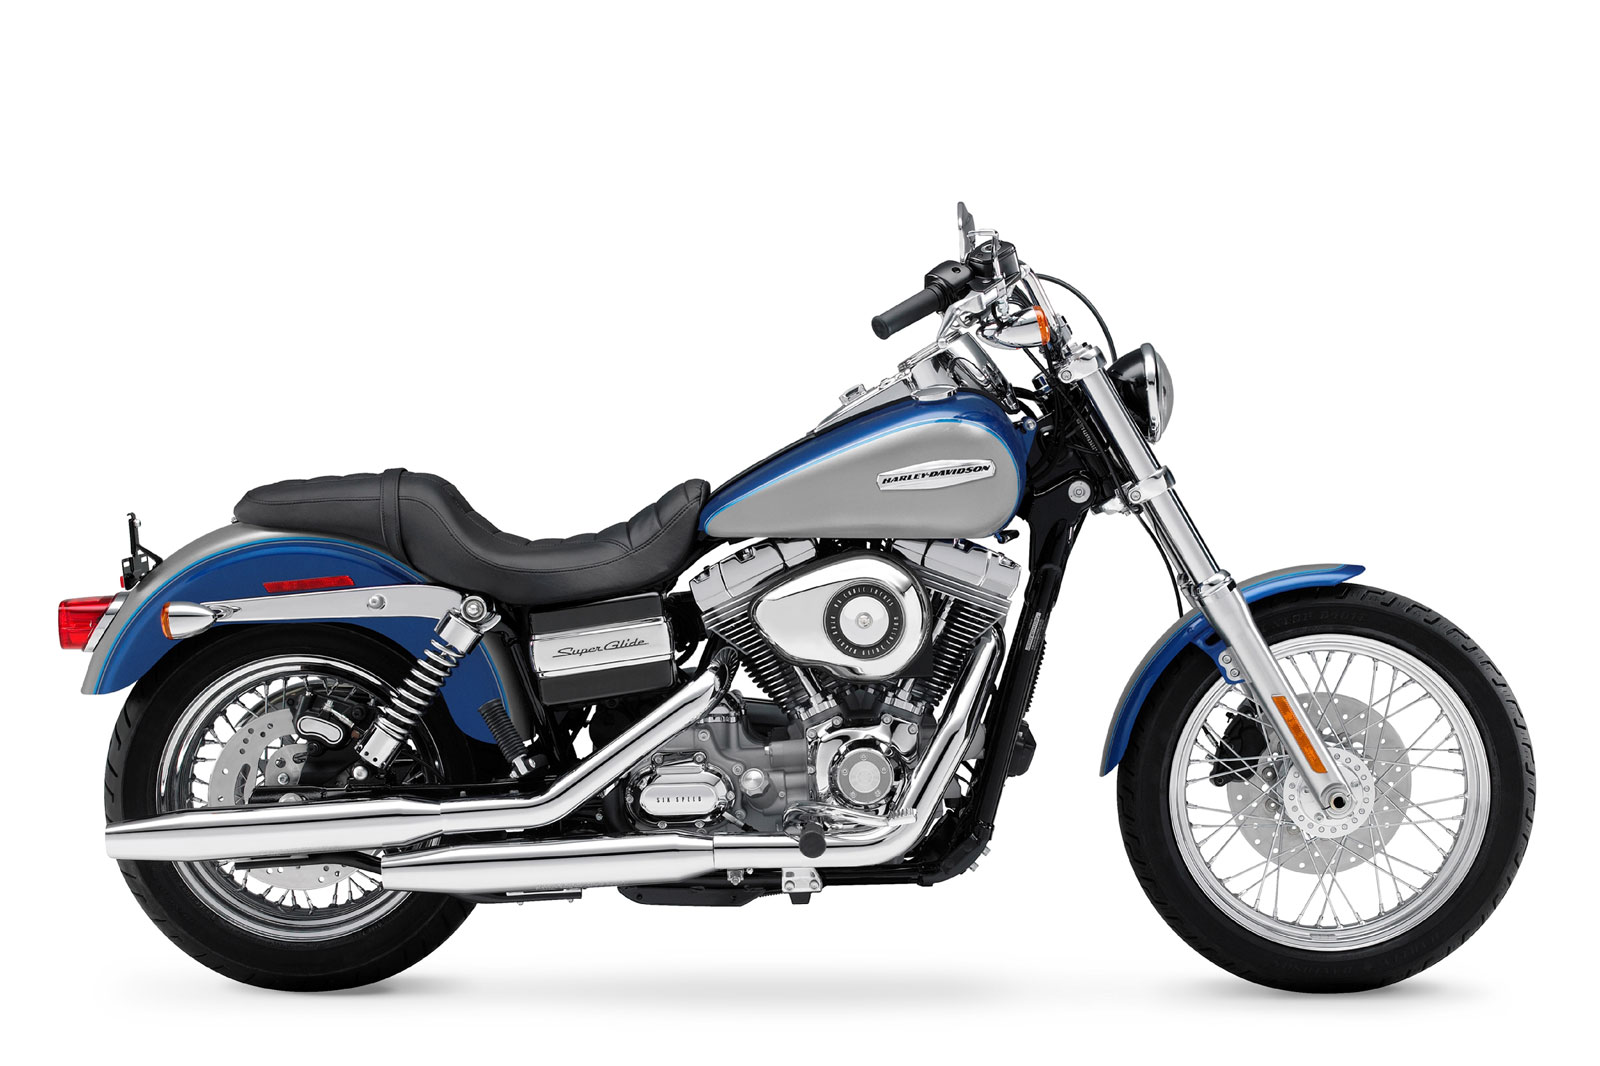 2009 Harley Davidson FXDC Dyna Super Glide Custom Motorcycle Picture